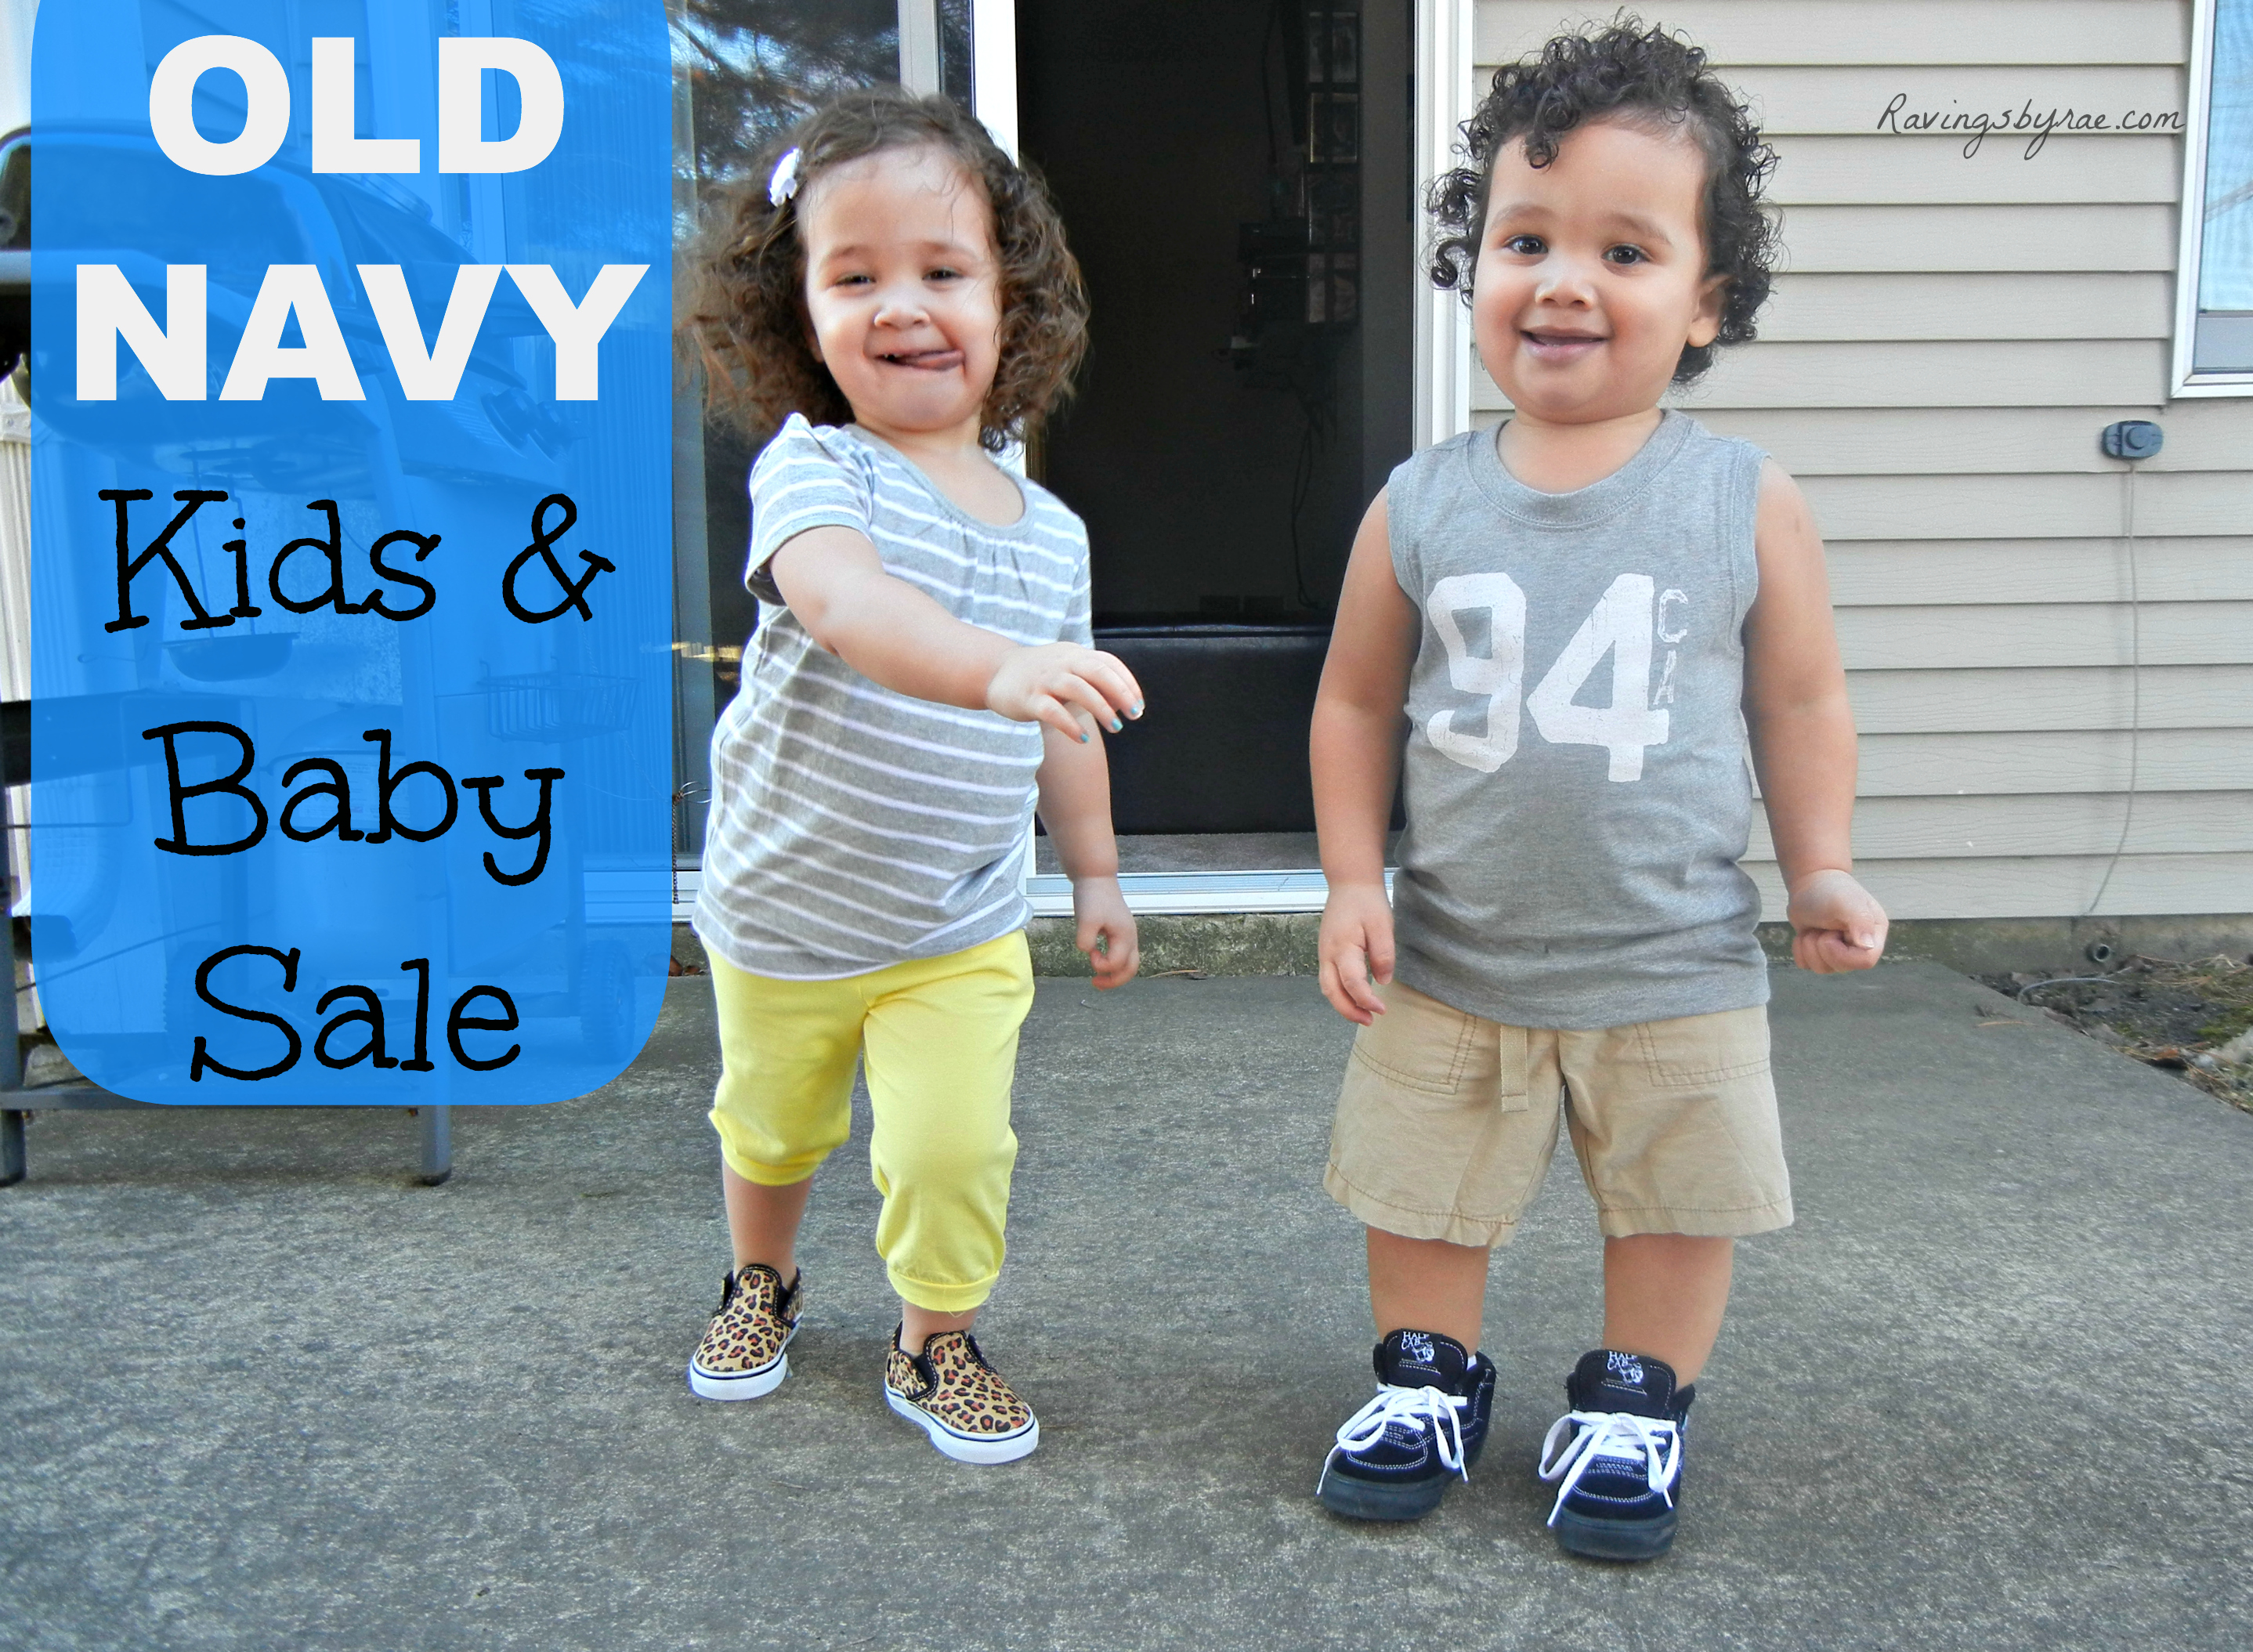 Old Navy Kids and Baby Sale